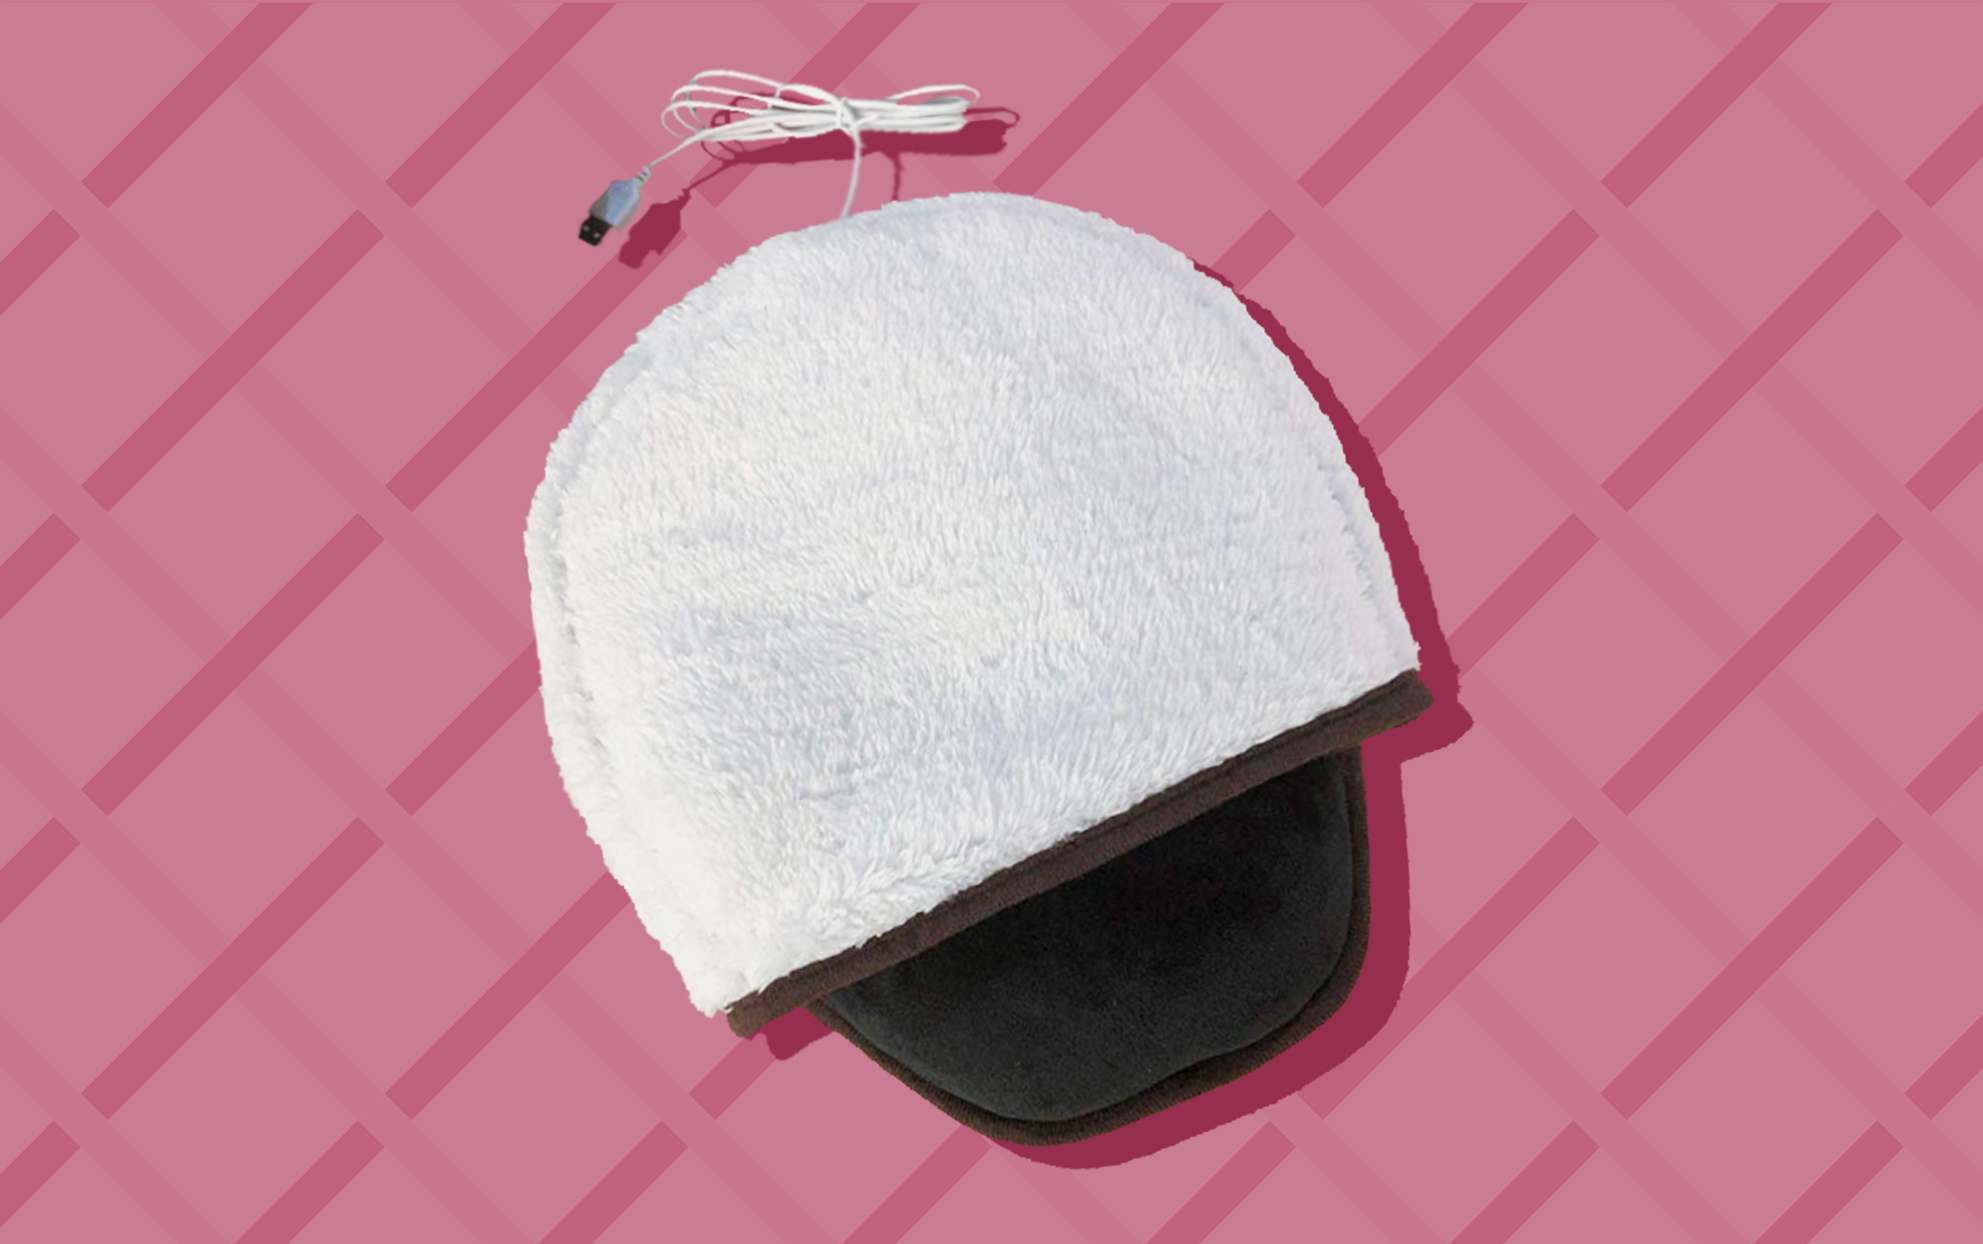 silo of a white heated mousepad on a colored background